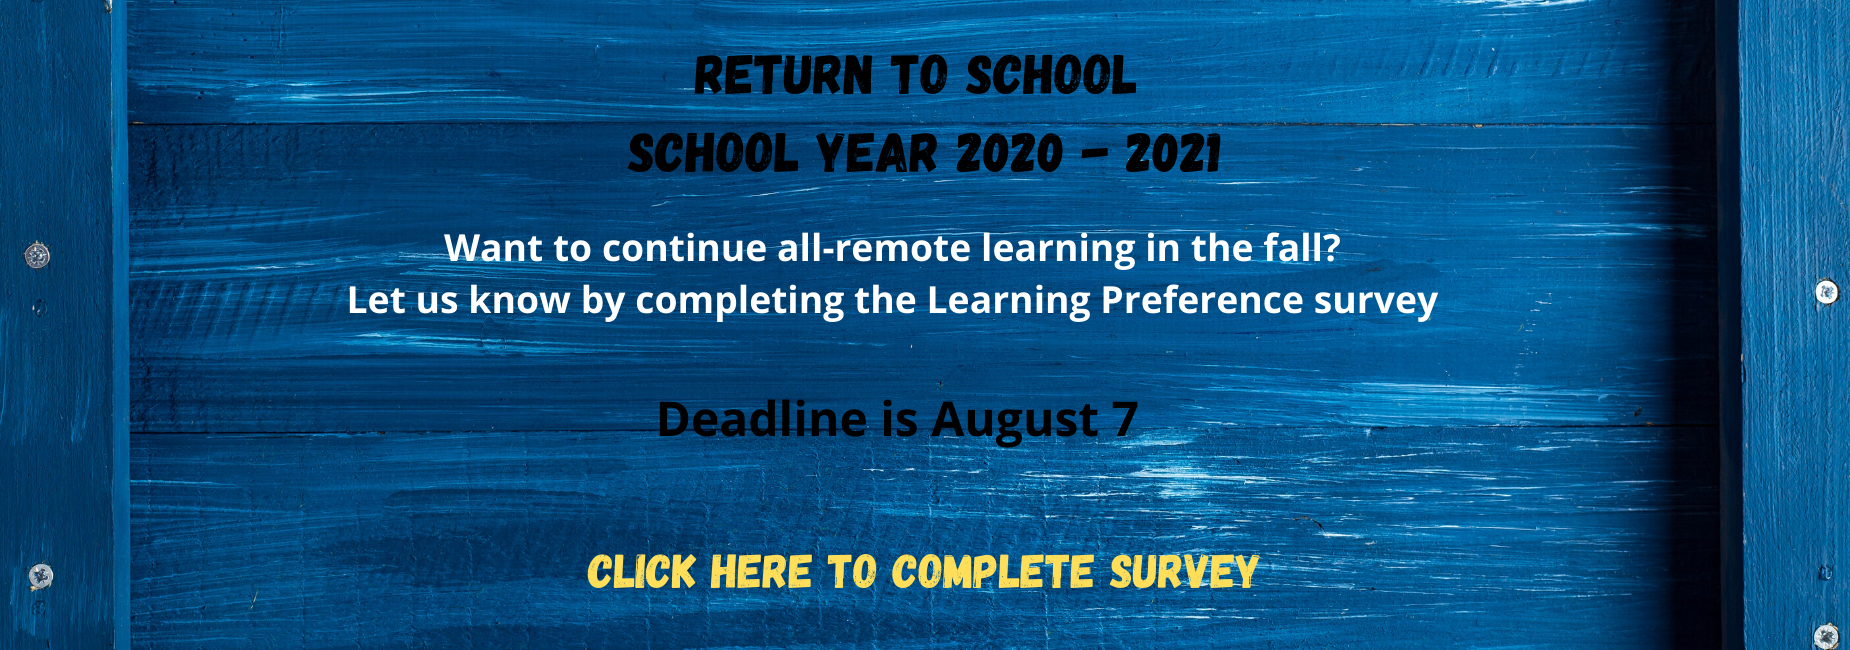 Return to School Survey Message and Link - English